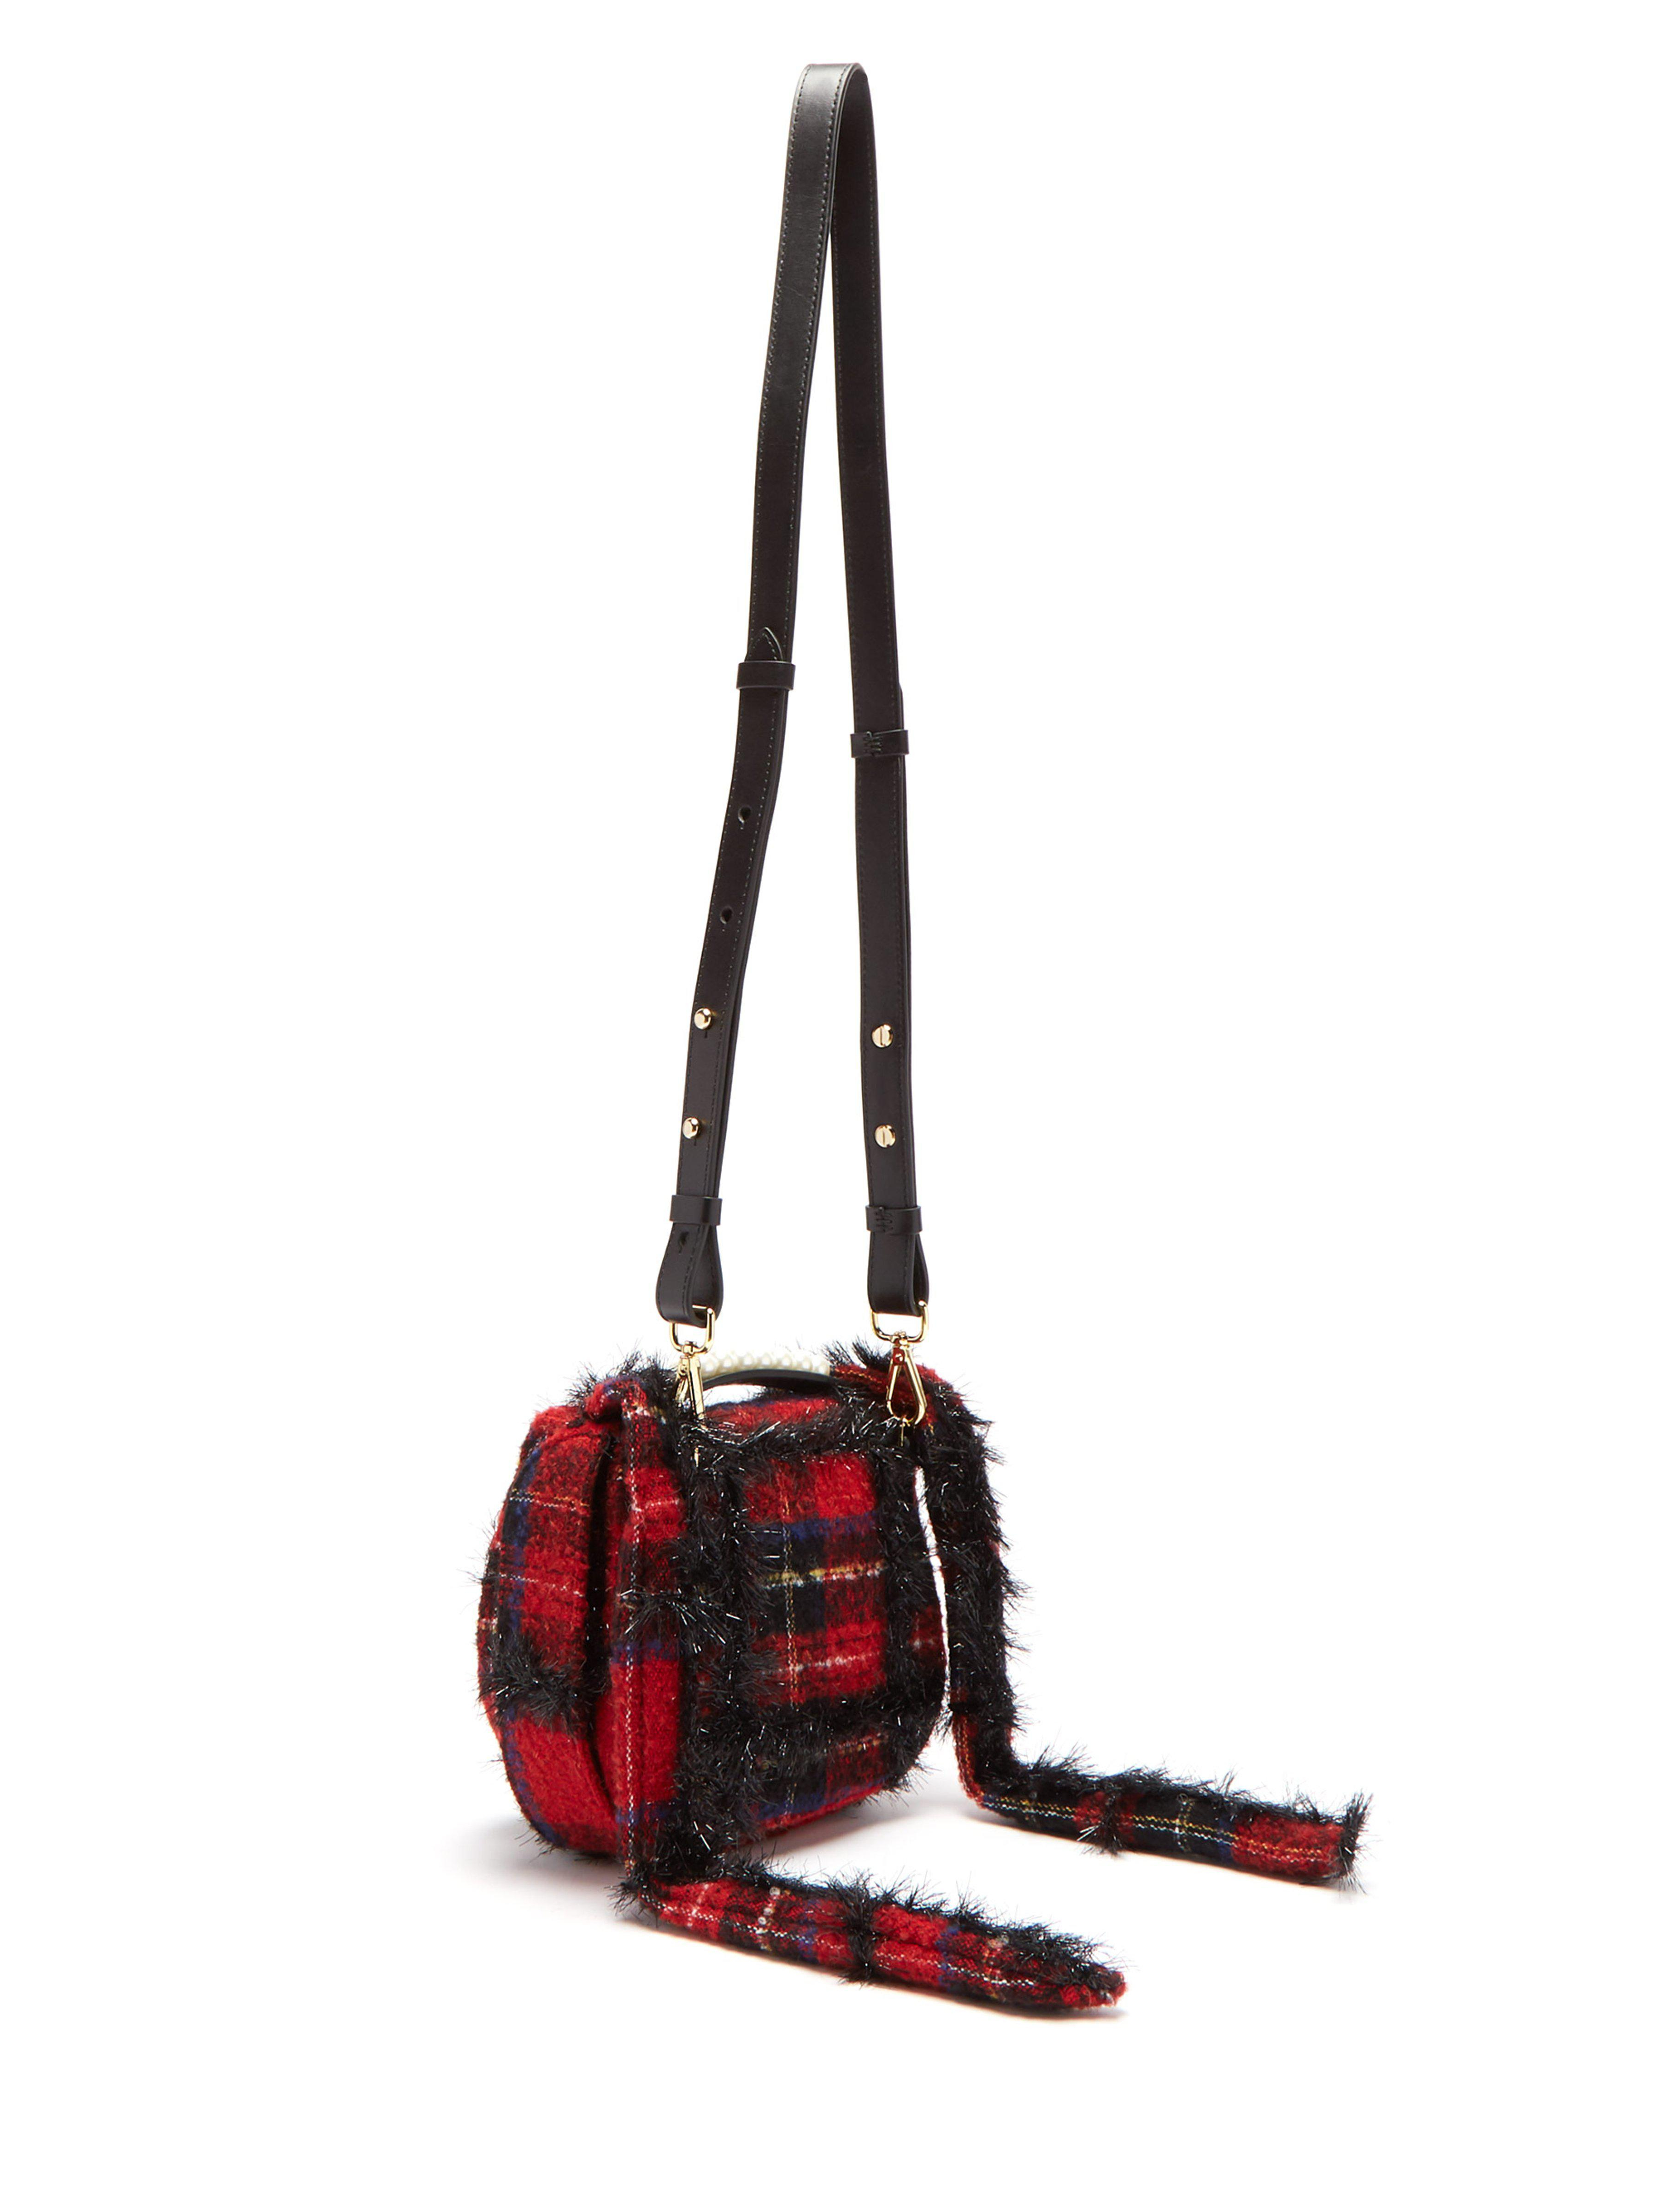 Simone Rocha Leather Embellished Tartan Pearly Crossbody Bag in Red